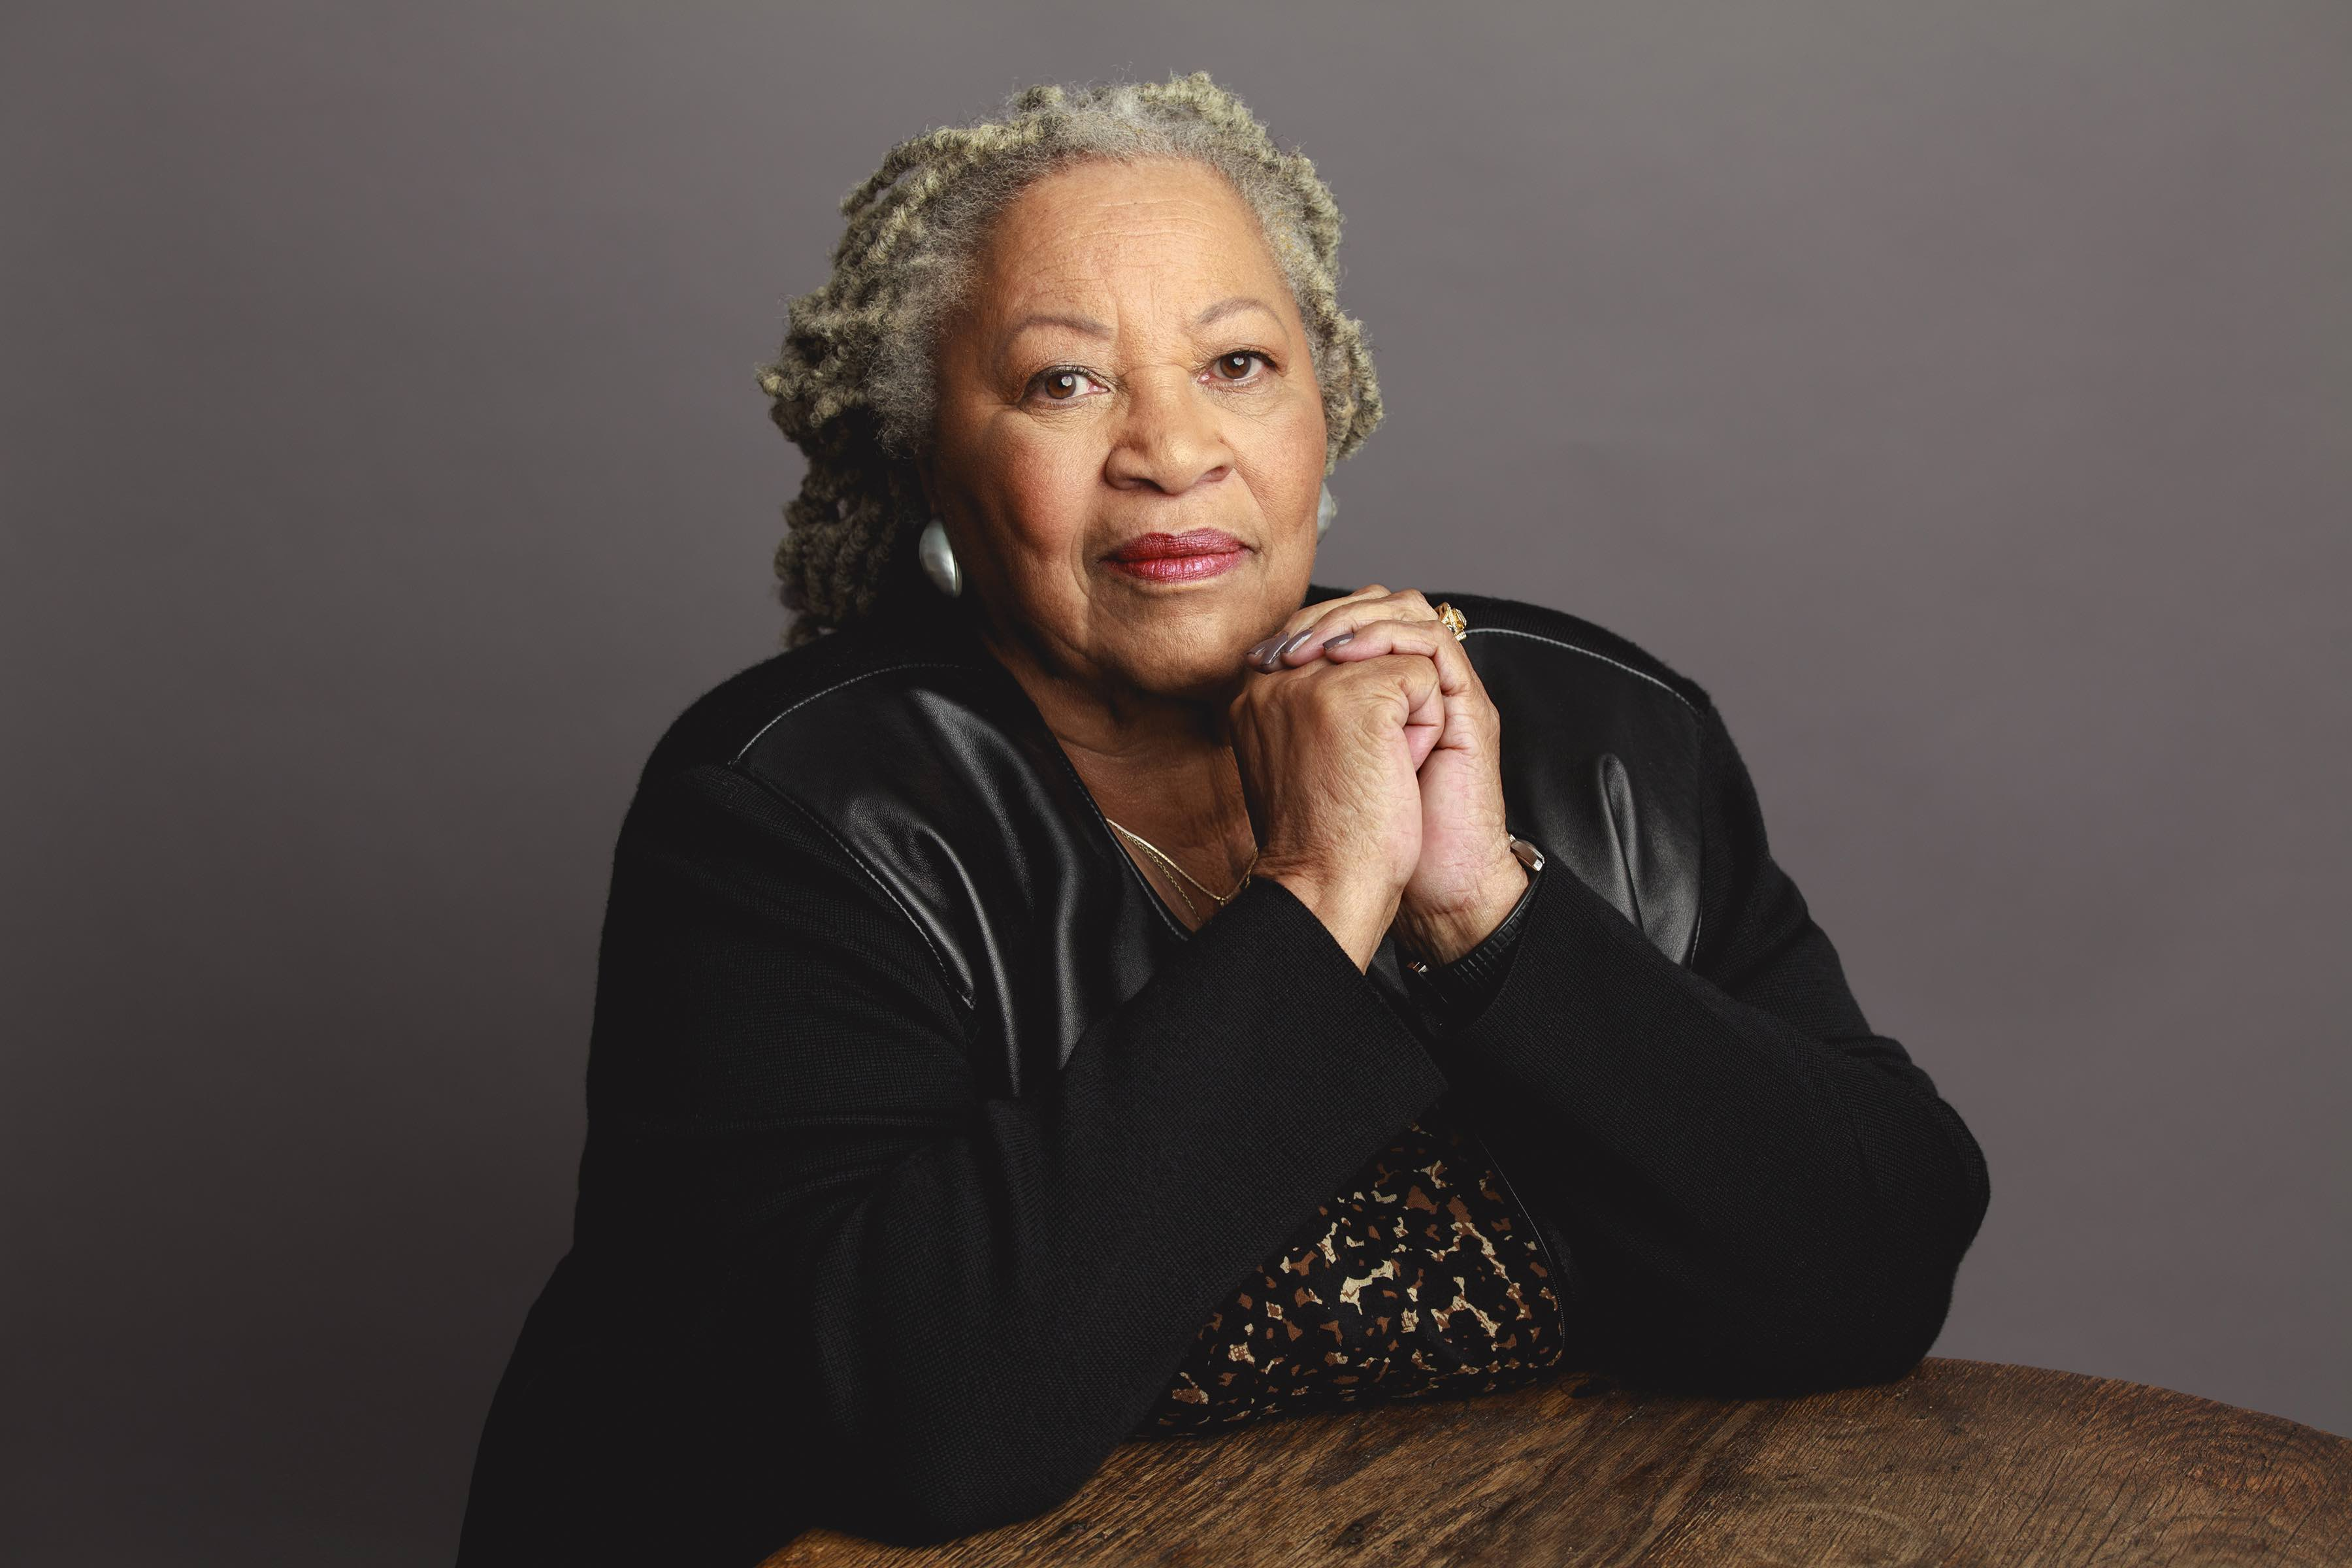 https://www.out.com/sites/out.com/files/2019/01/28/4_toni_morrison_the_pieces_i_am_subject_toni_morrison_2015._photo_credit_timothy_greenfield-sanders.jpg